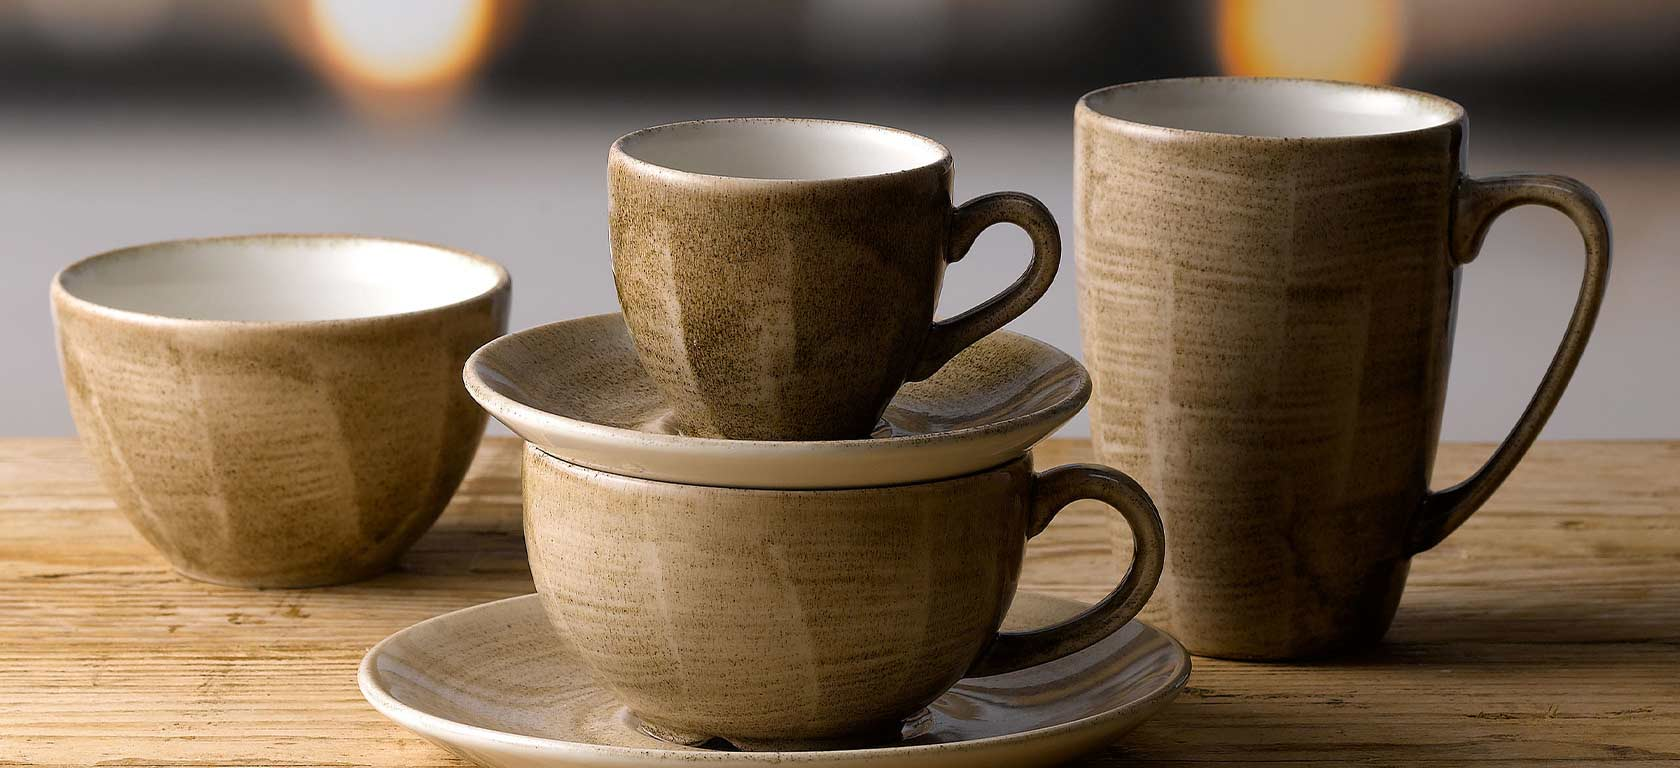 Rustic earth-toned saucers and mugs with angular features.